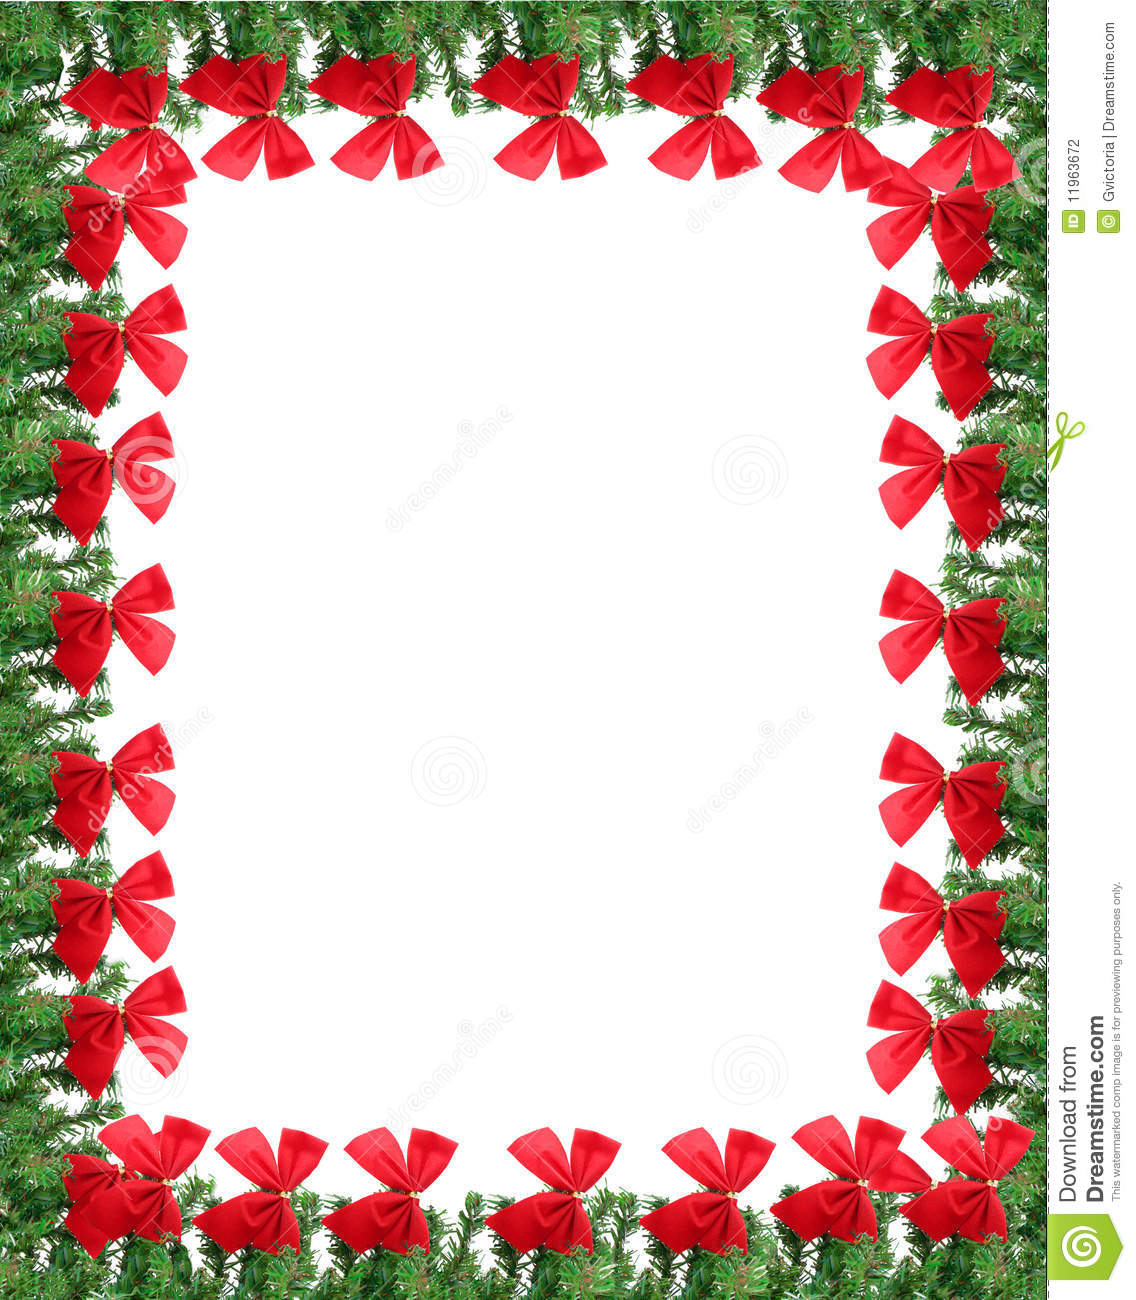 Christmas greeting card border stock photo image of bows festive download christmas greeting card border stock photo image of bows festive 11963672 m4hsunfo